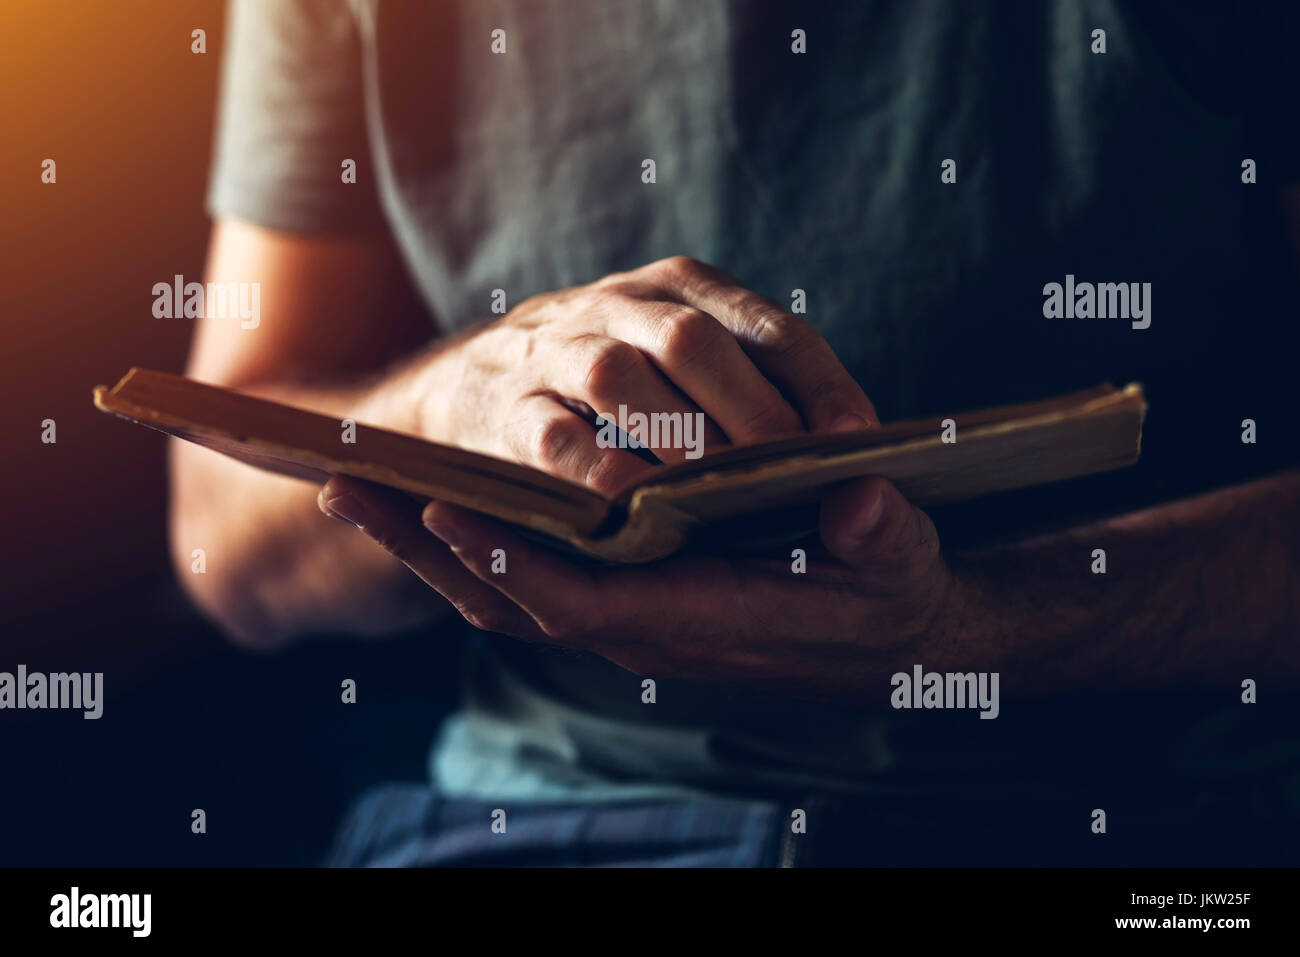 Reading an old book, close up of male hands flipping vintage weathered book pages - Stock Image